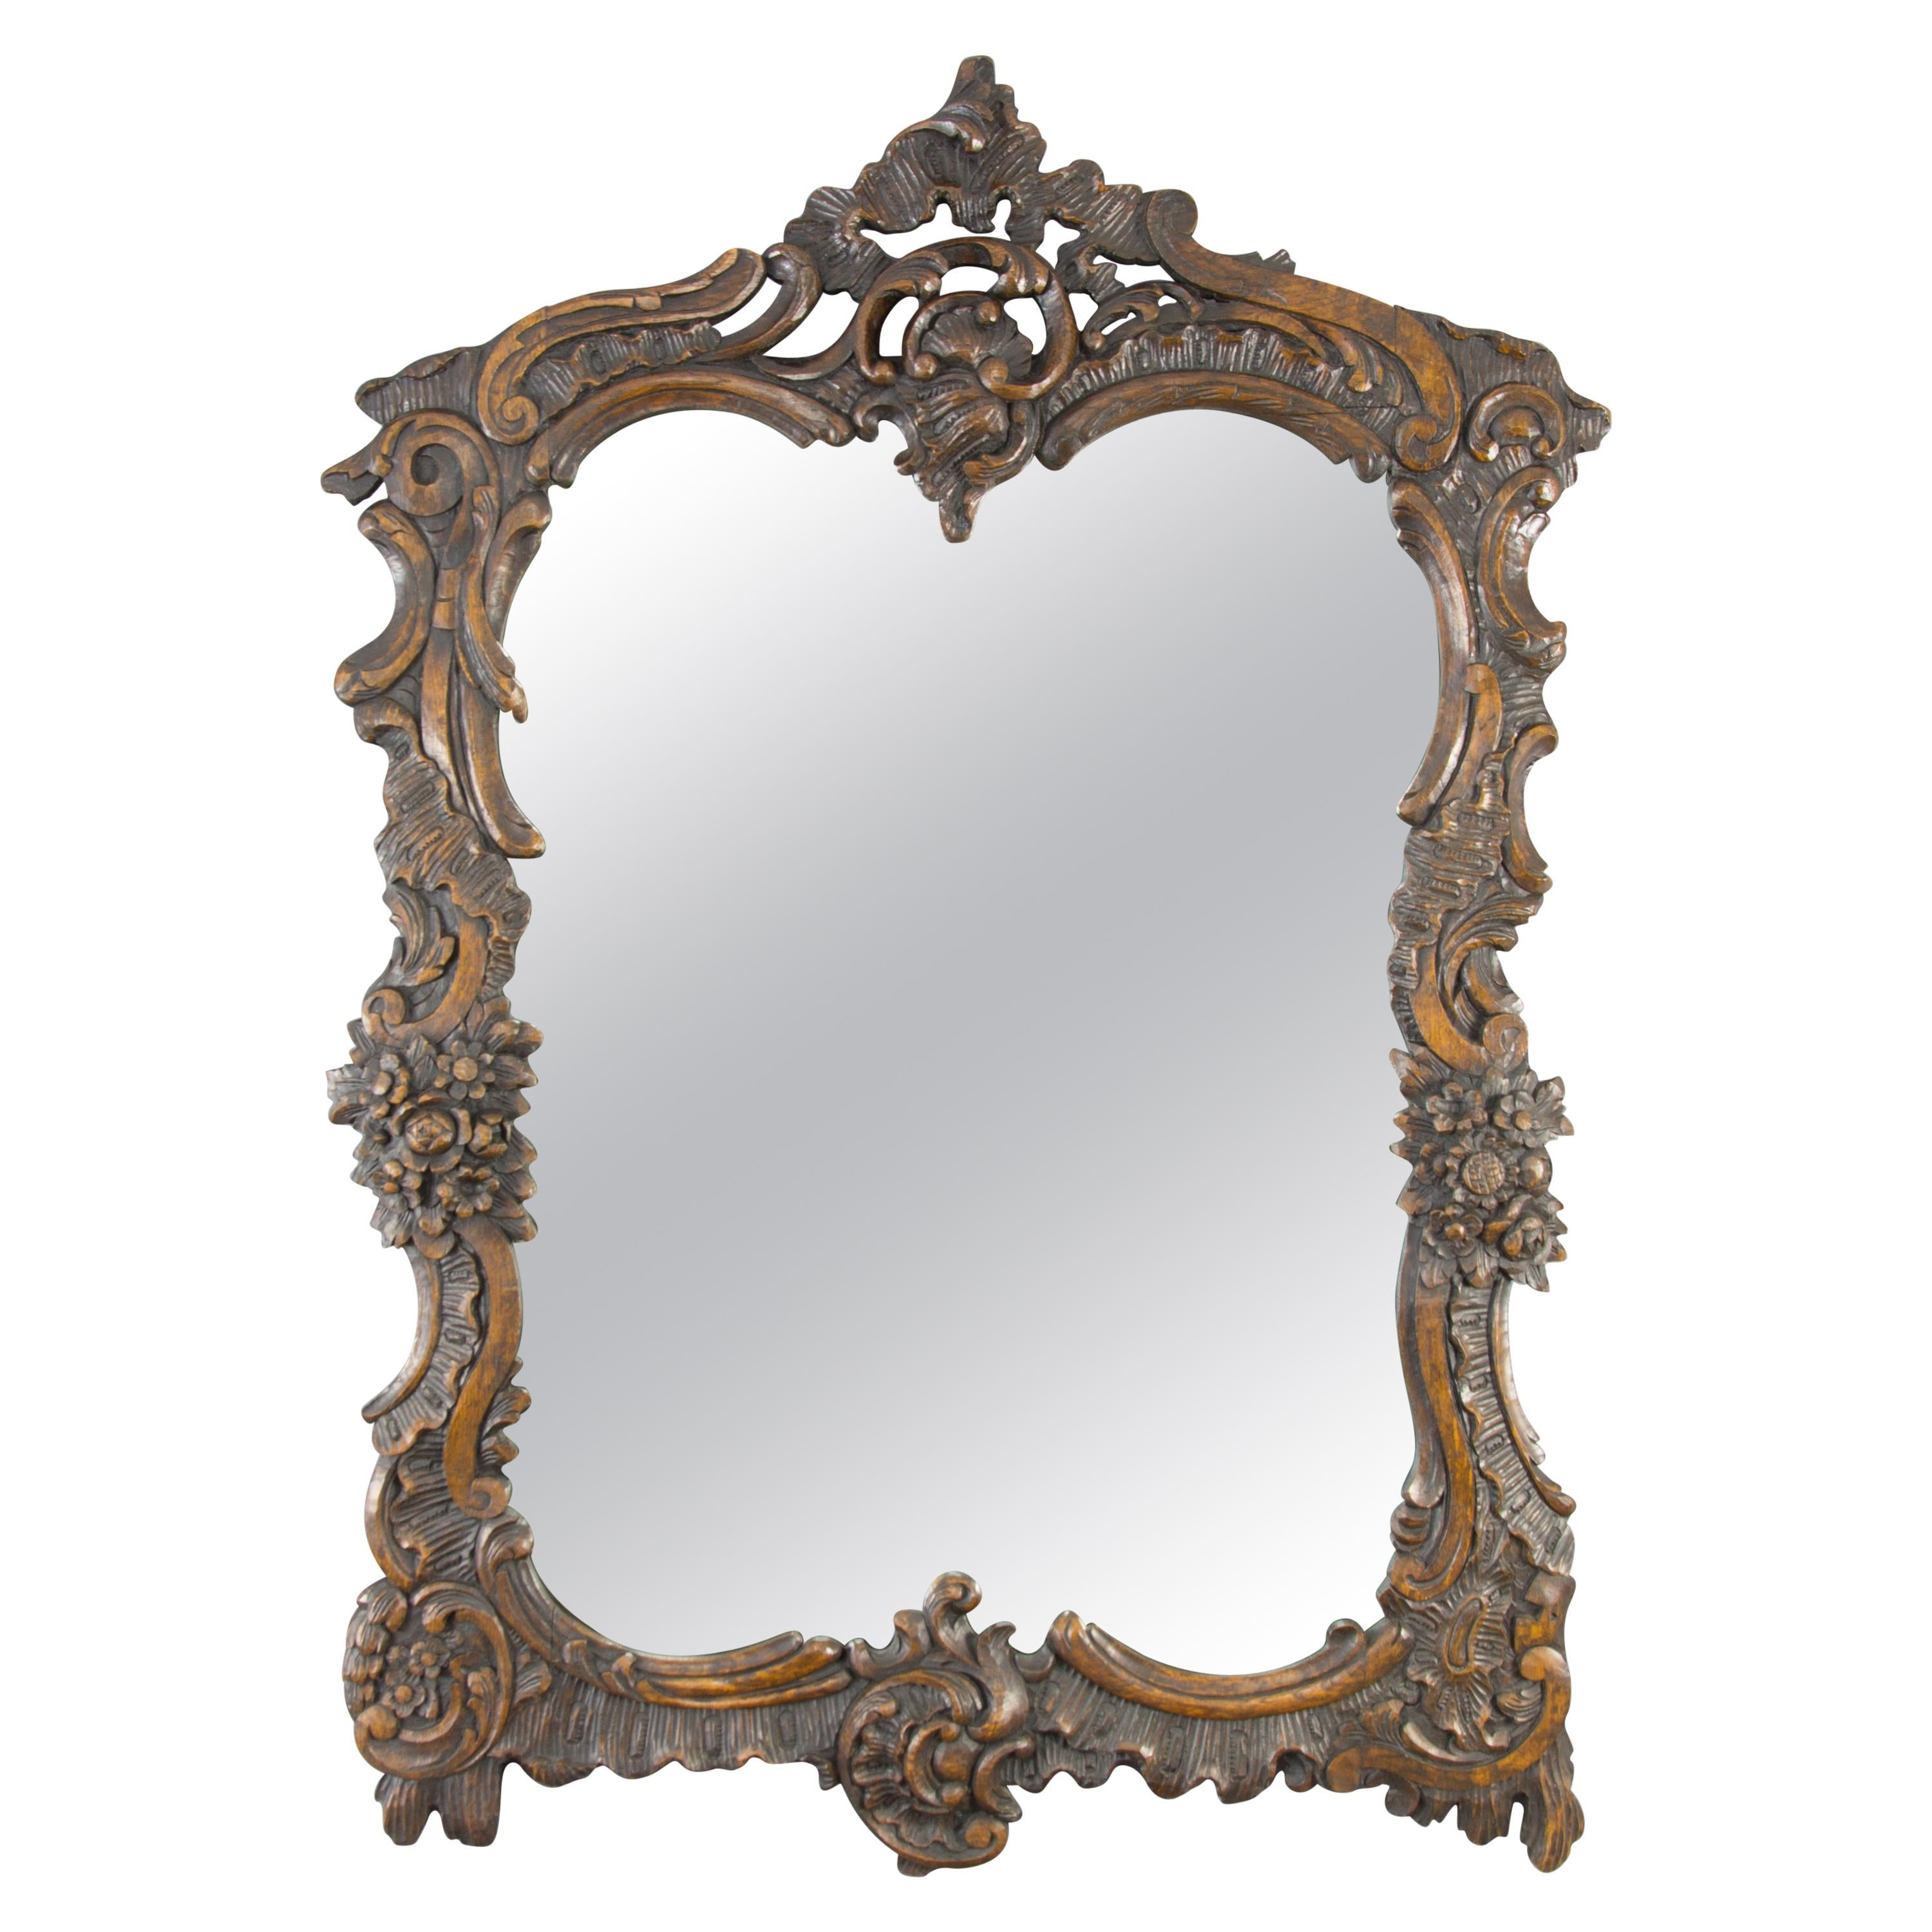 French Rococo Style Ornate Carved Wood Dark Brown Wall Mirror Early 20th Century